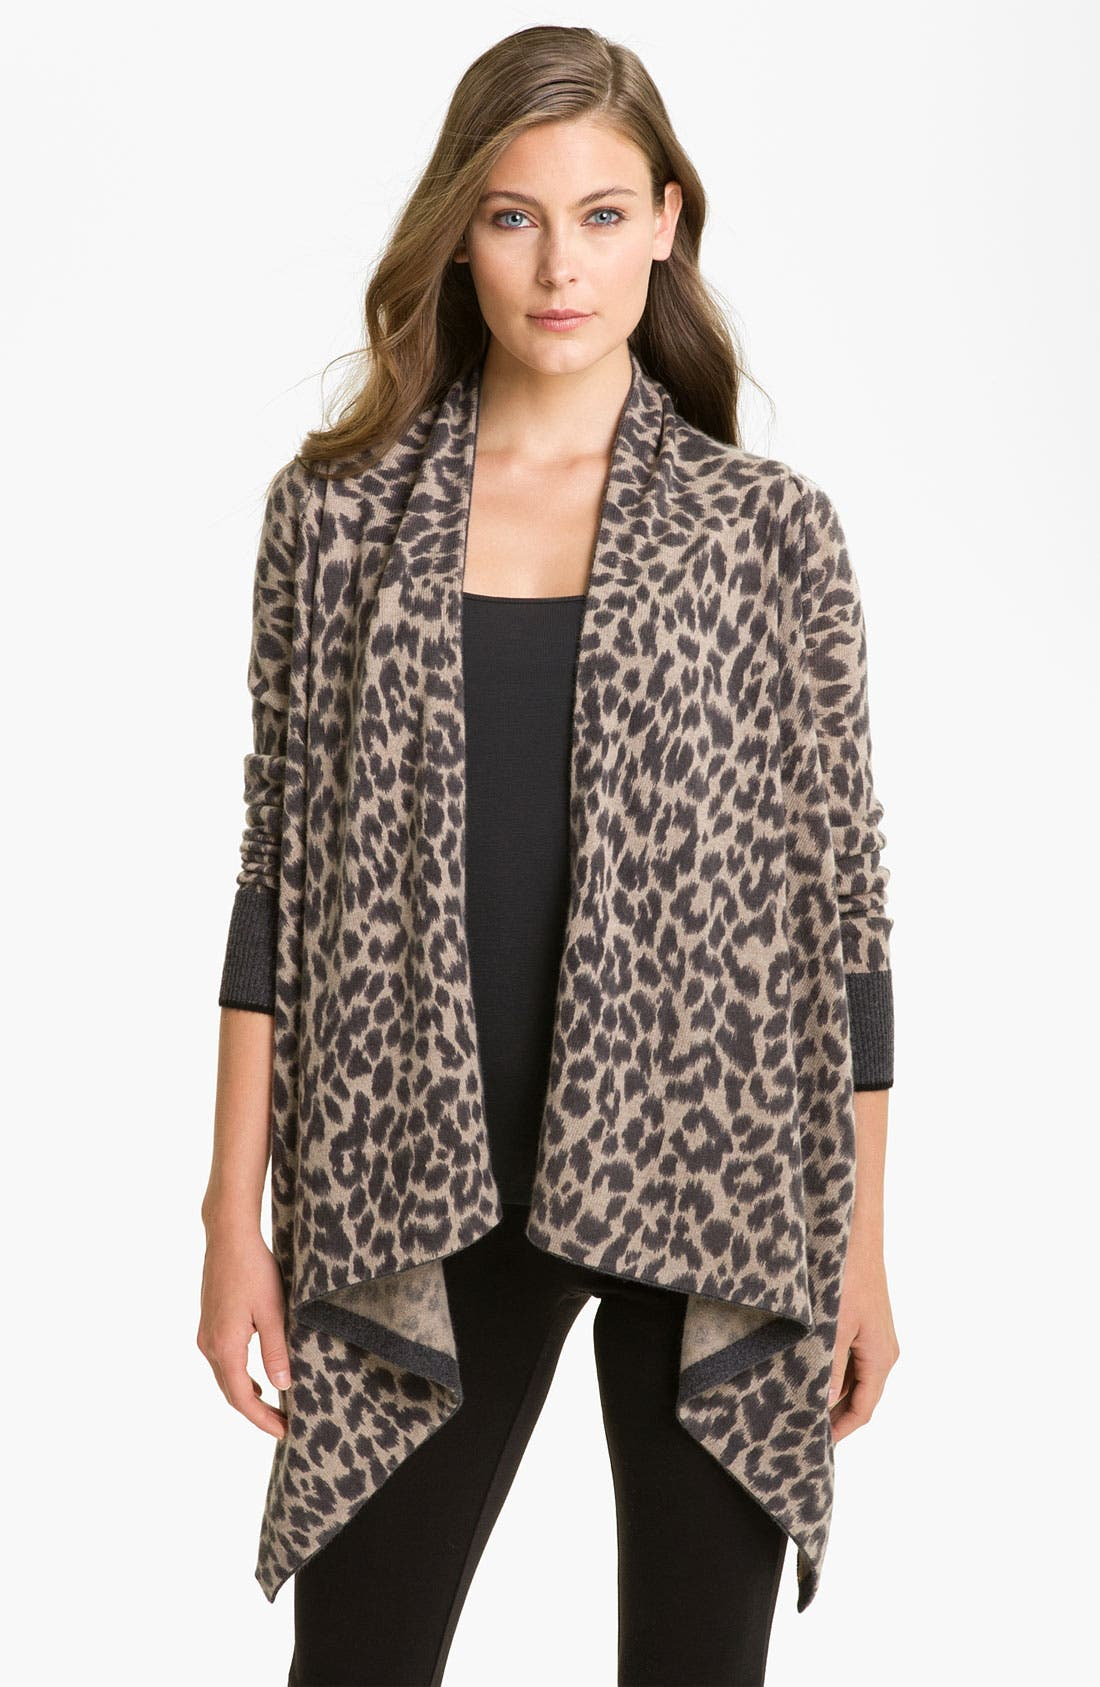 Alternate Image 1 Selected - White + Warren Animal Print Cashmere Cardigan